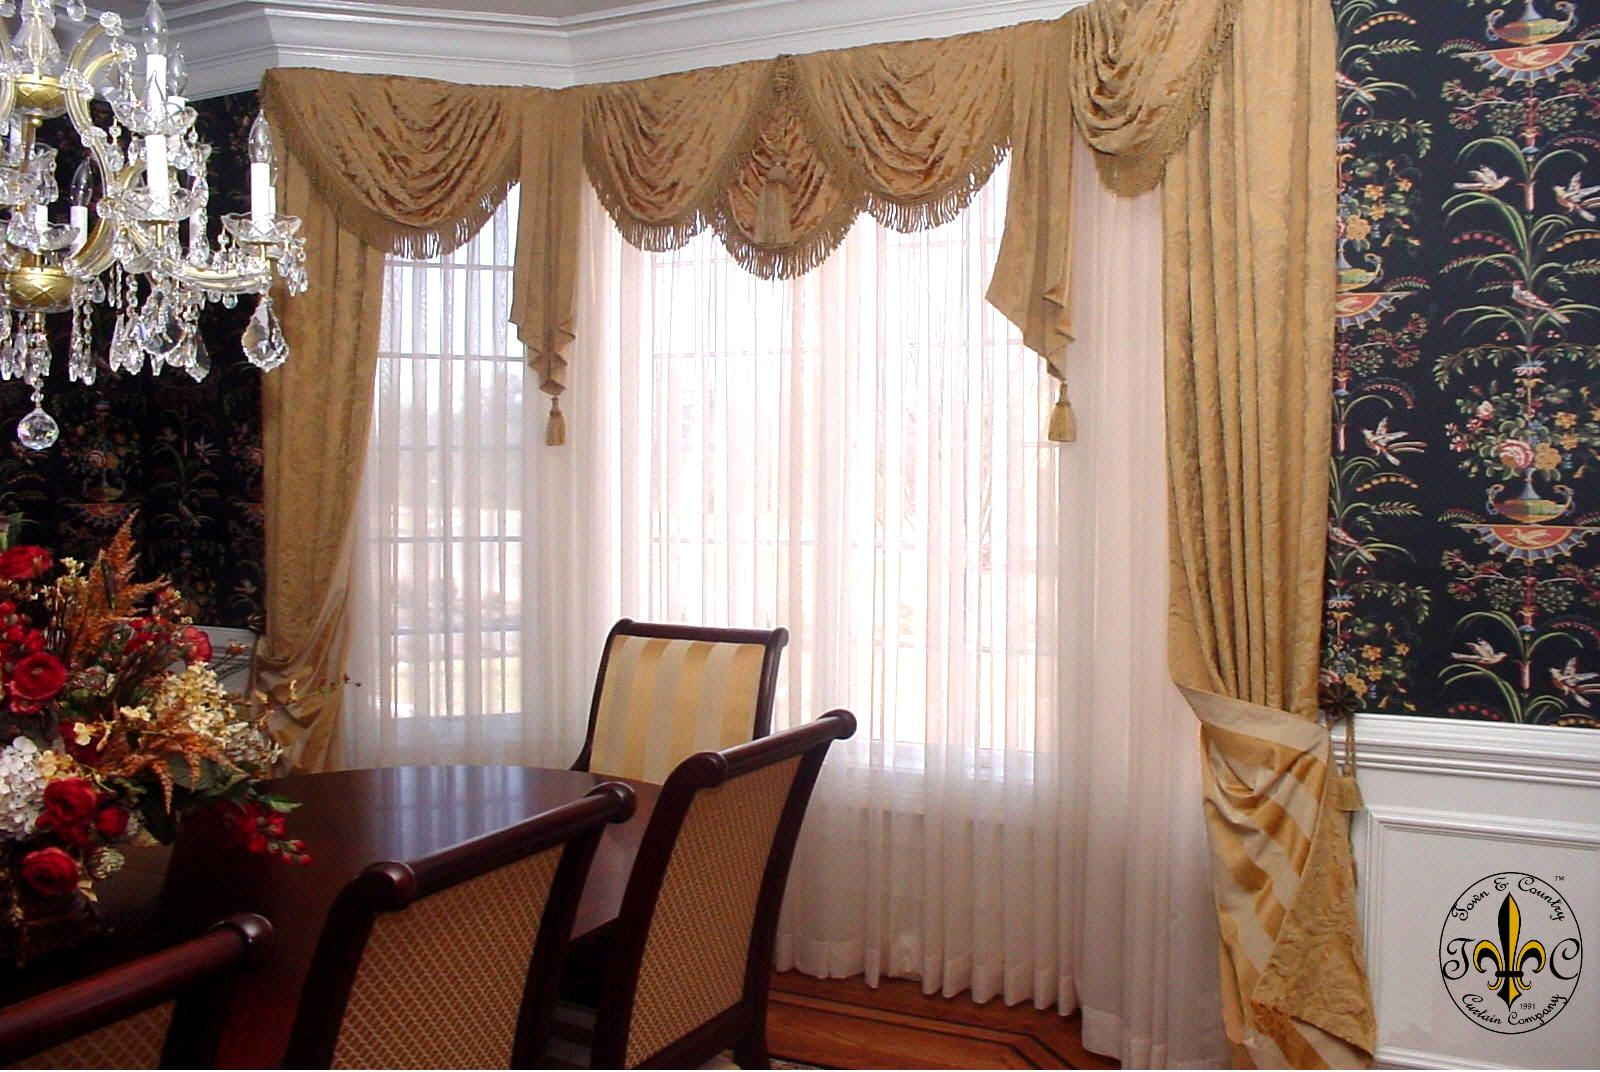 Curtains Designs For Living Room Amazing Beautiul Design Curtain With Soft Window Treatments Design Ideas Review